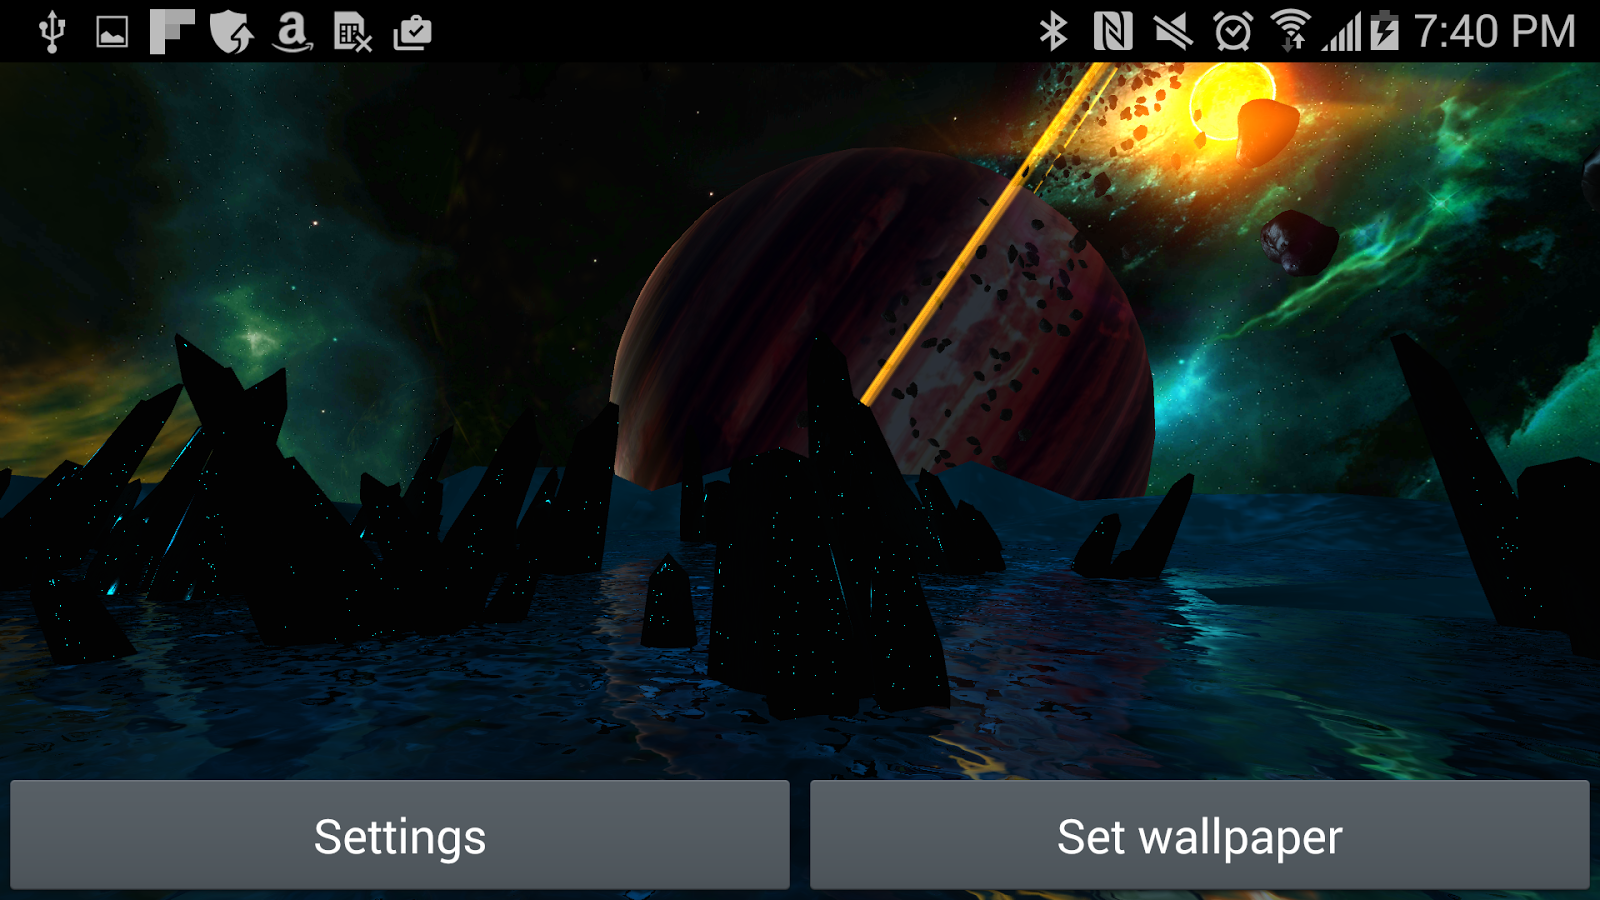 Far Galaxy 3D Live Wallpaper Screenshot 15